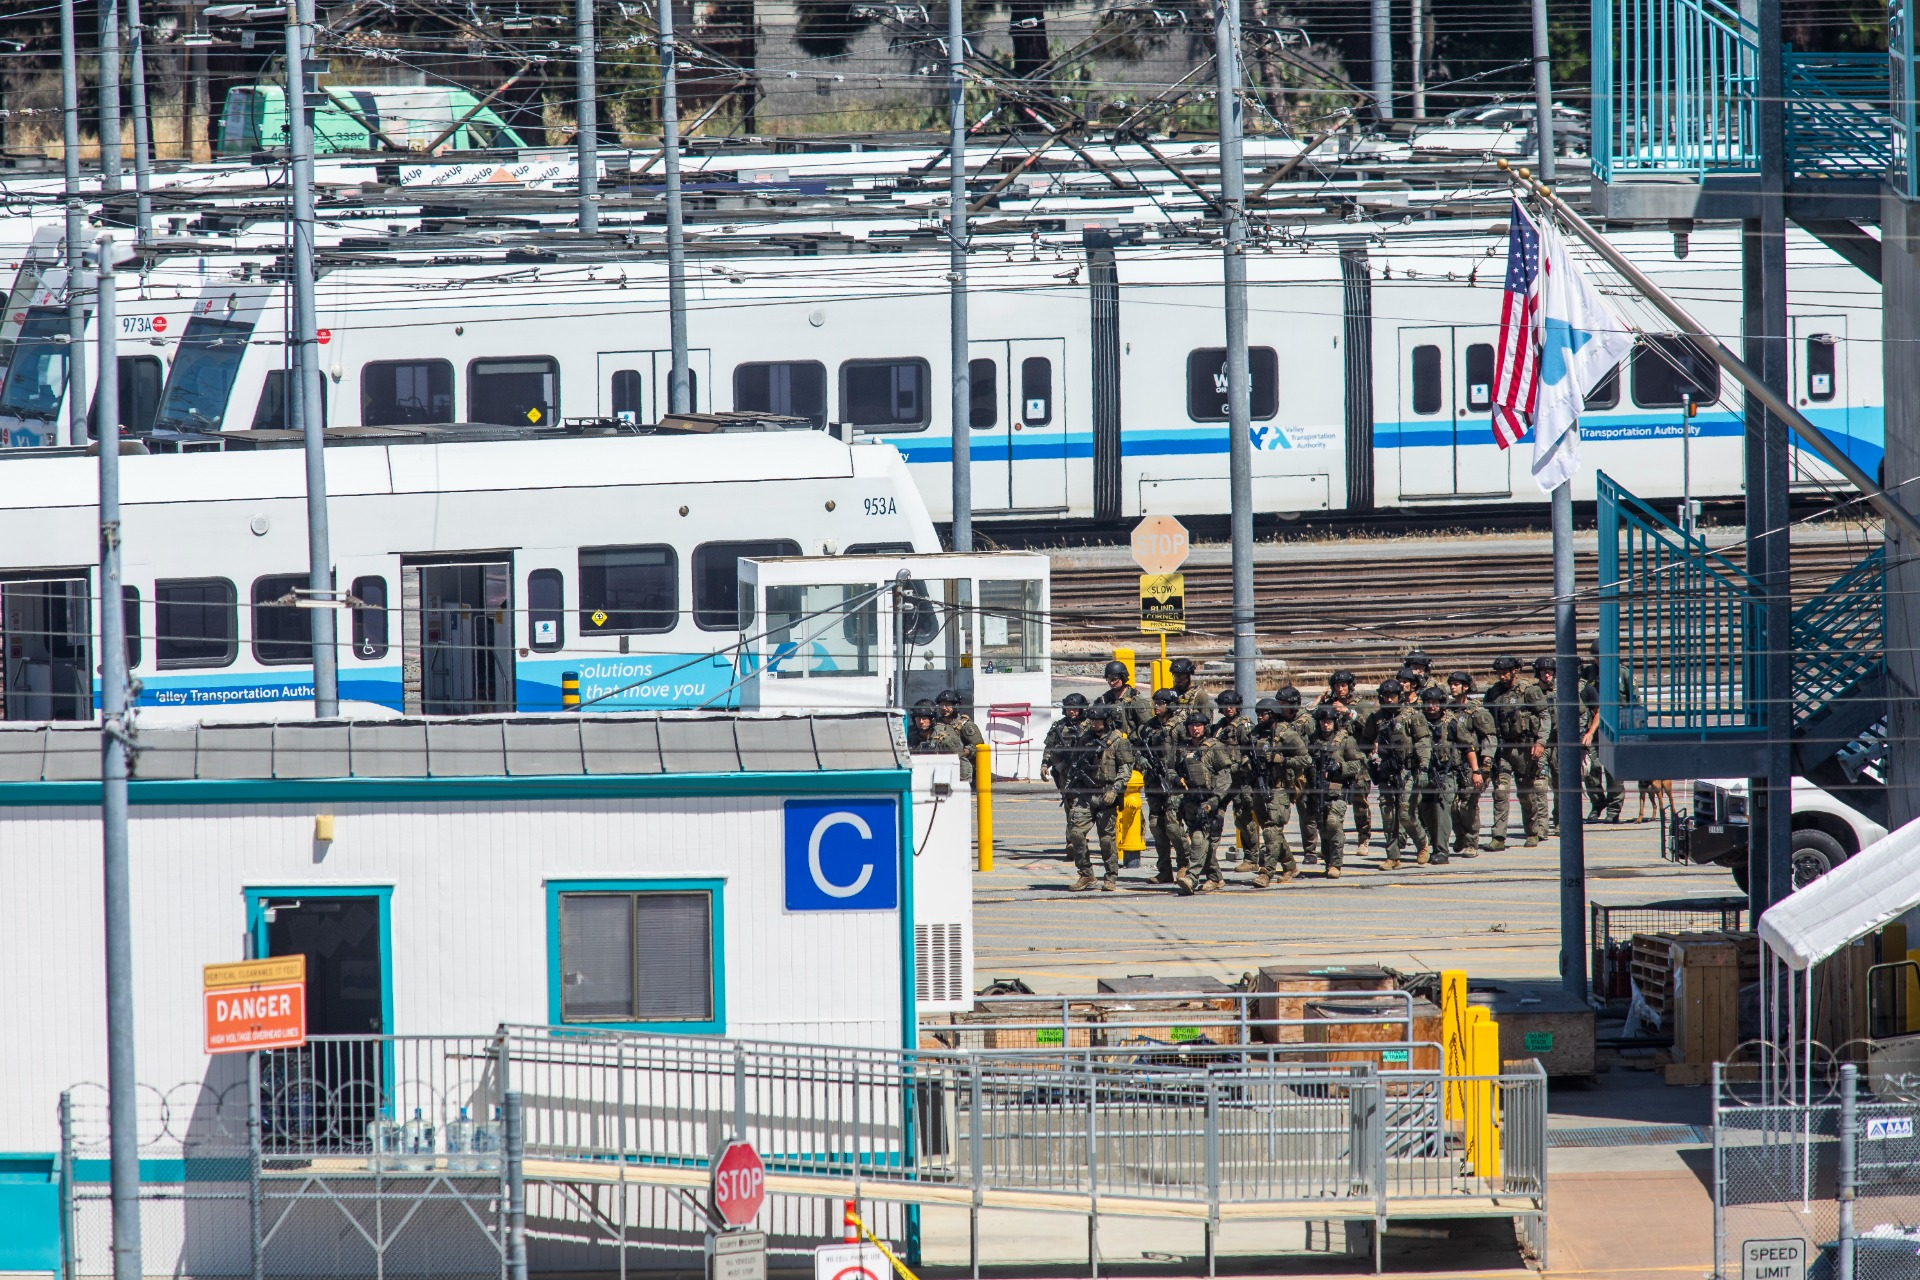 A faraway shot of a rail yard with a line of trains, as a small crowd of people in tactical gear walk toward the camera.